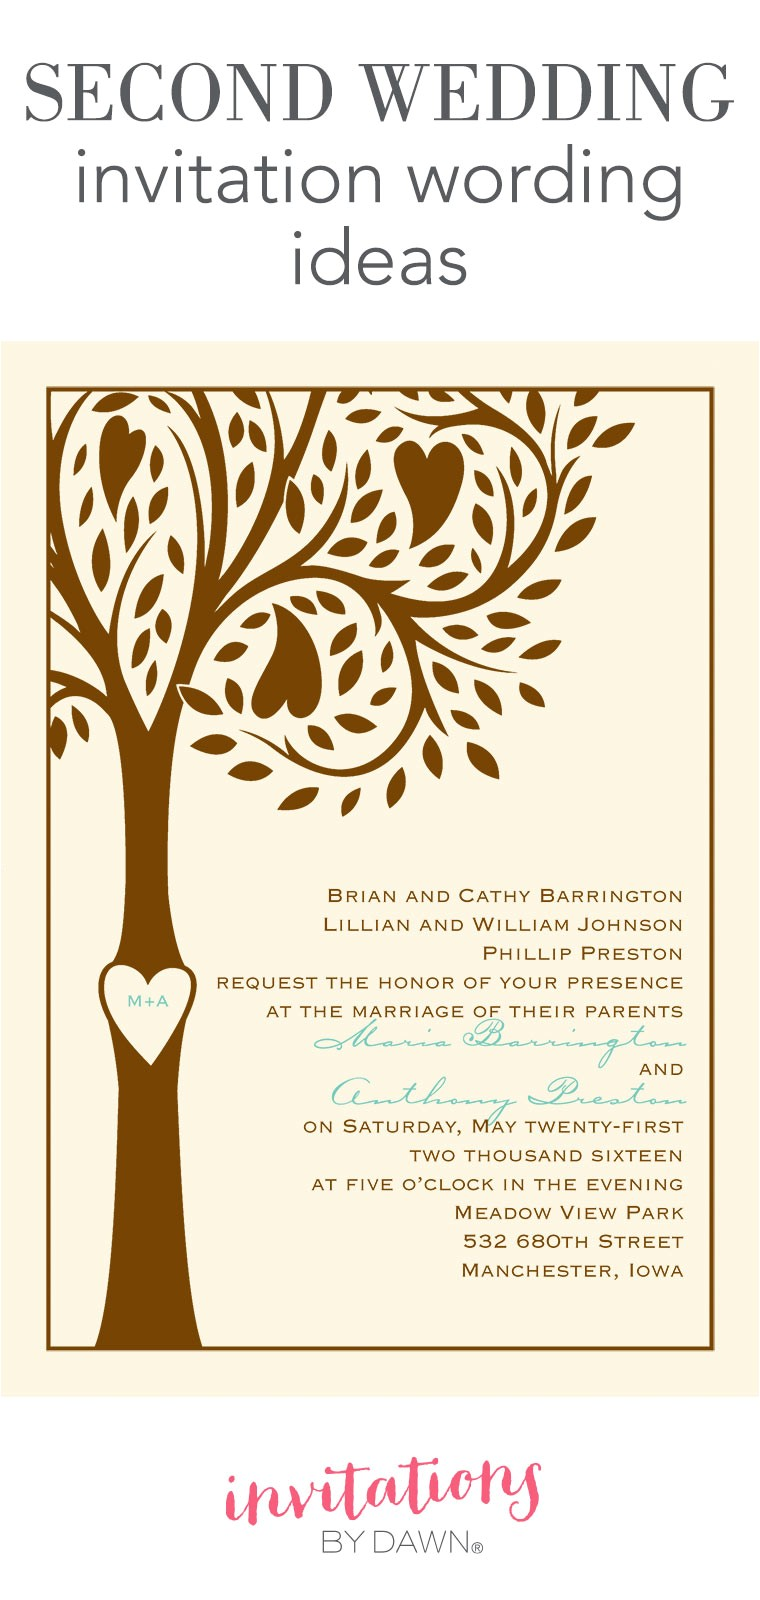 second wedding invitation wording